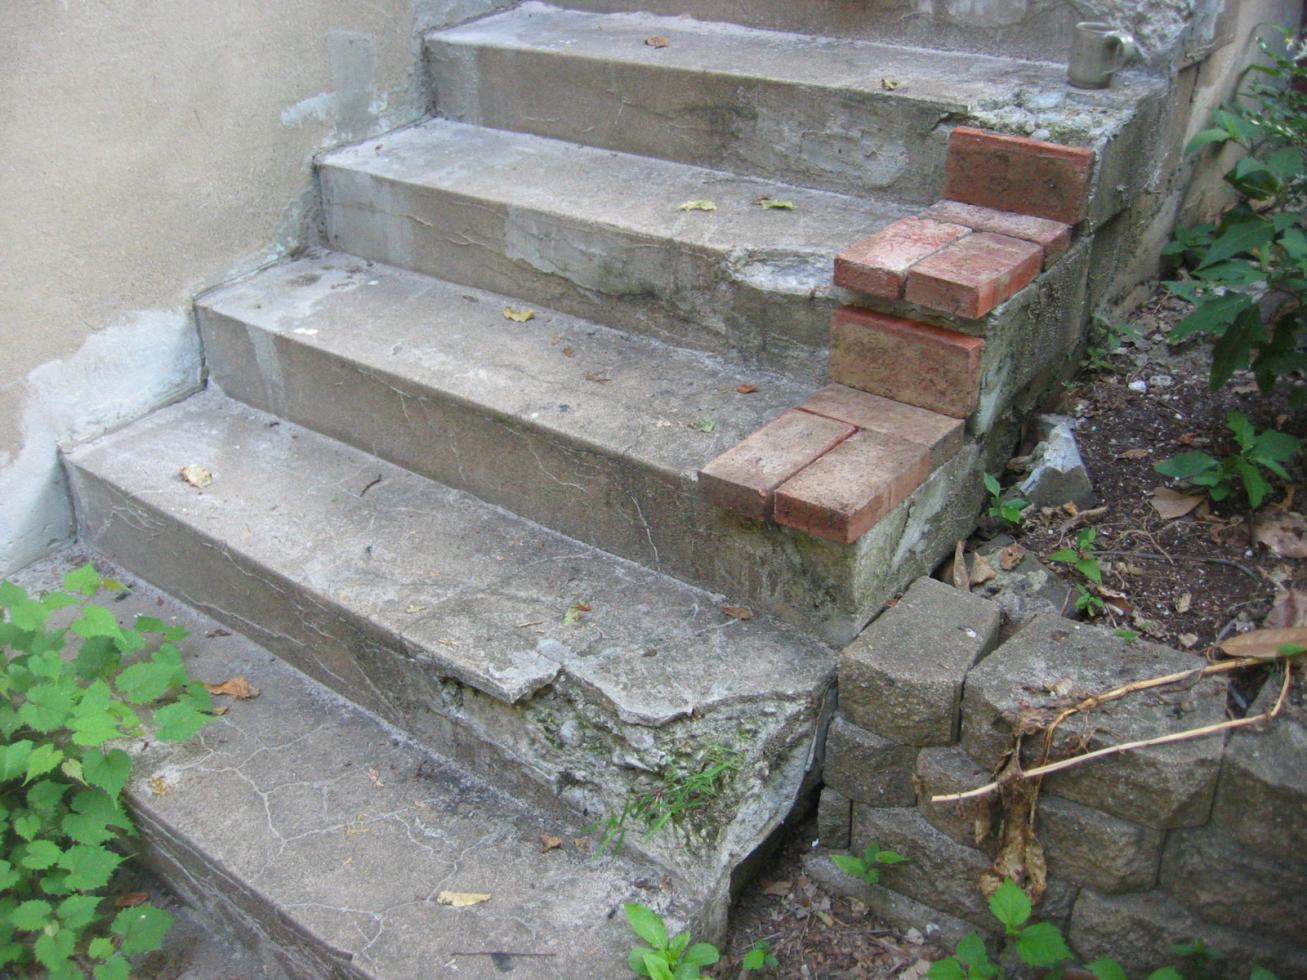 Well-liked Covering Outdoor Concrete Steps - Outdoor Ideas UV88